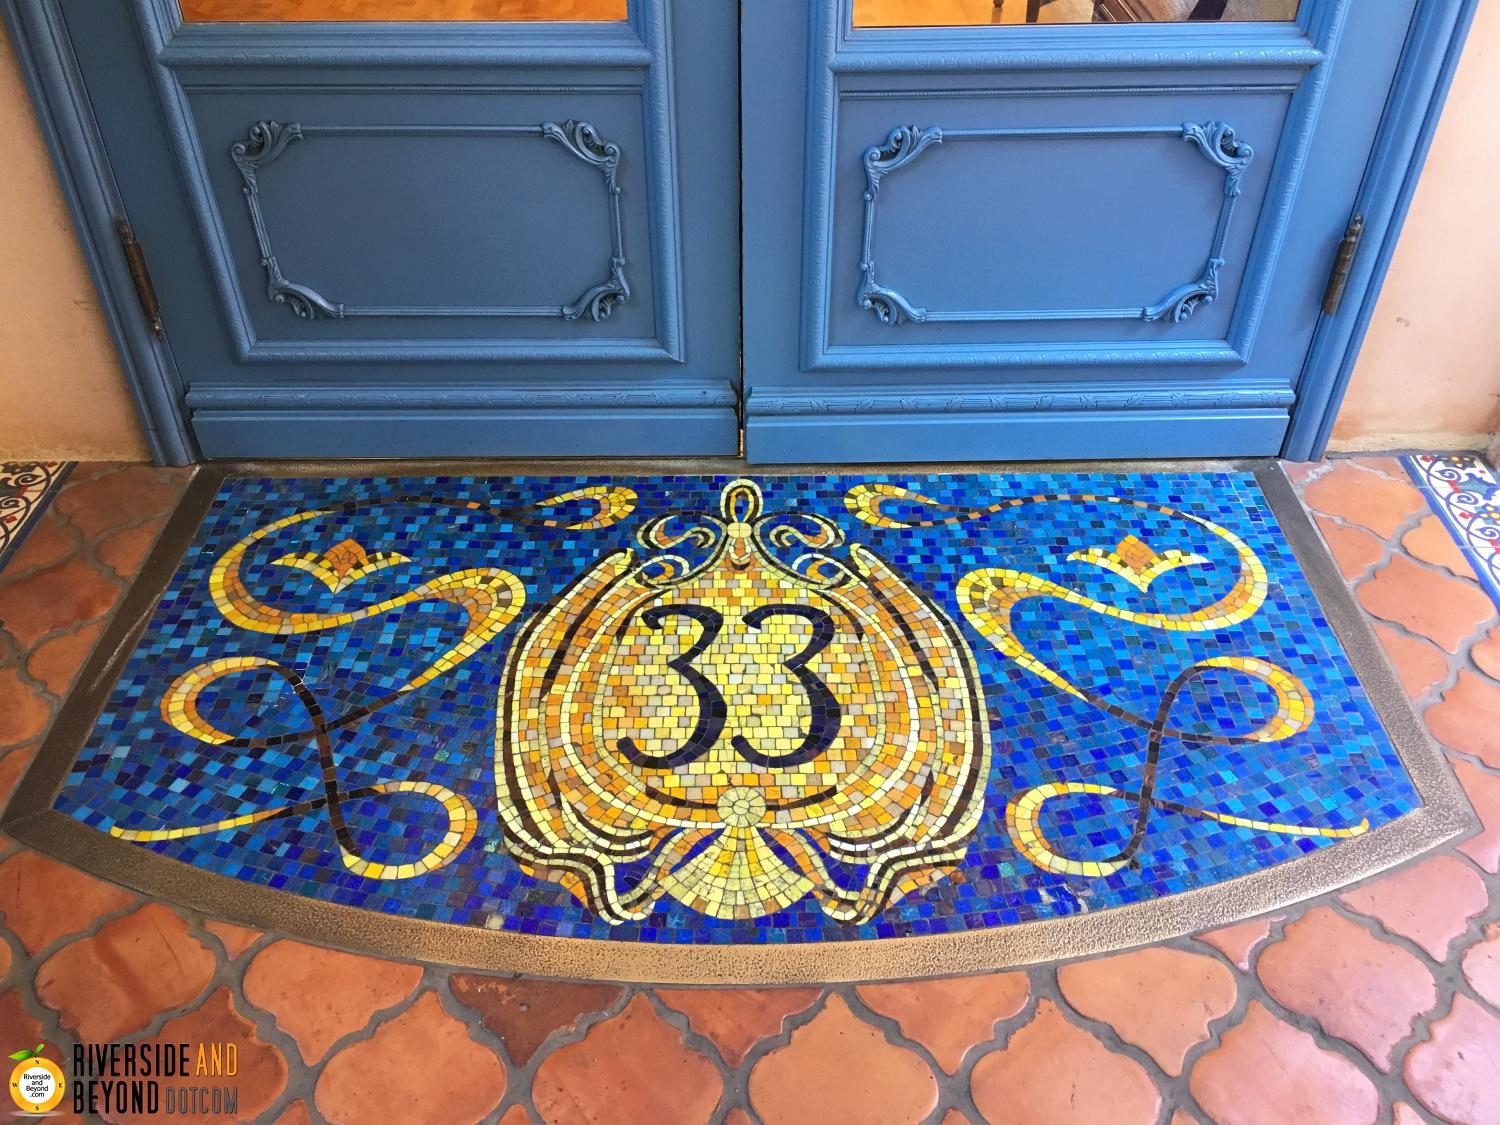 Club 33 entrance at Disneyland.